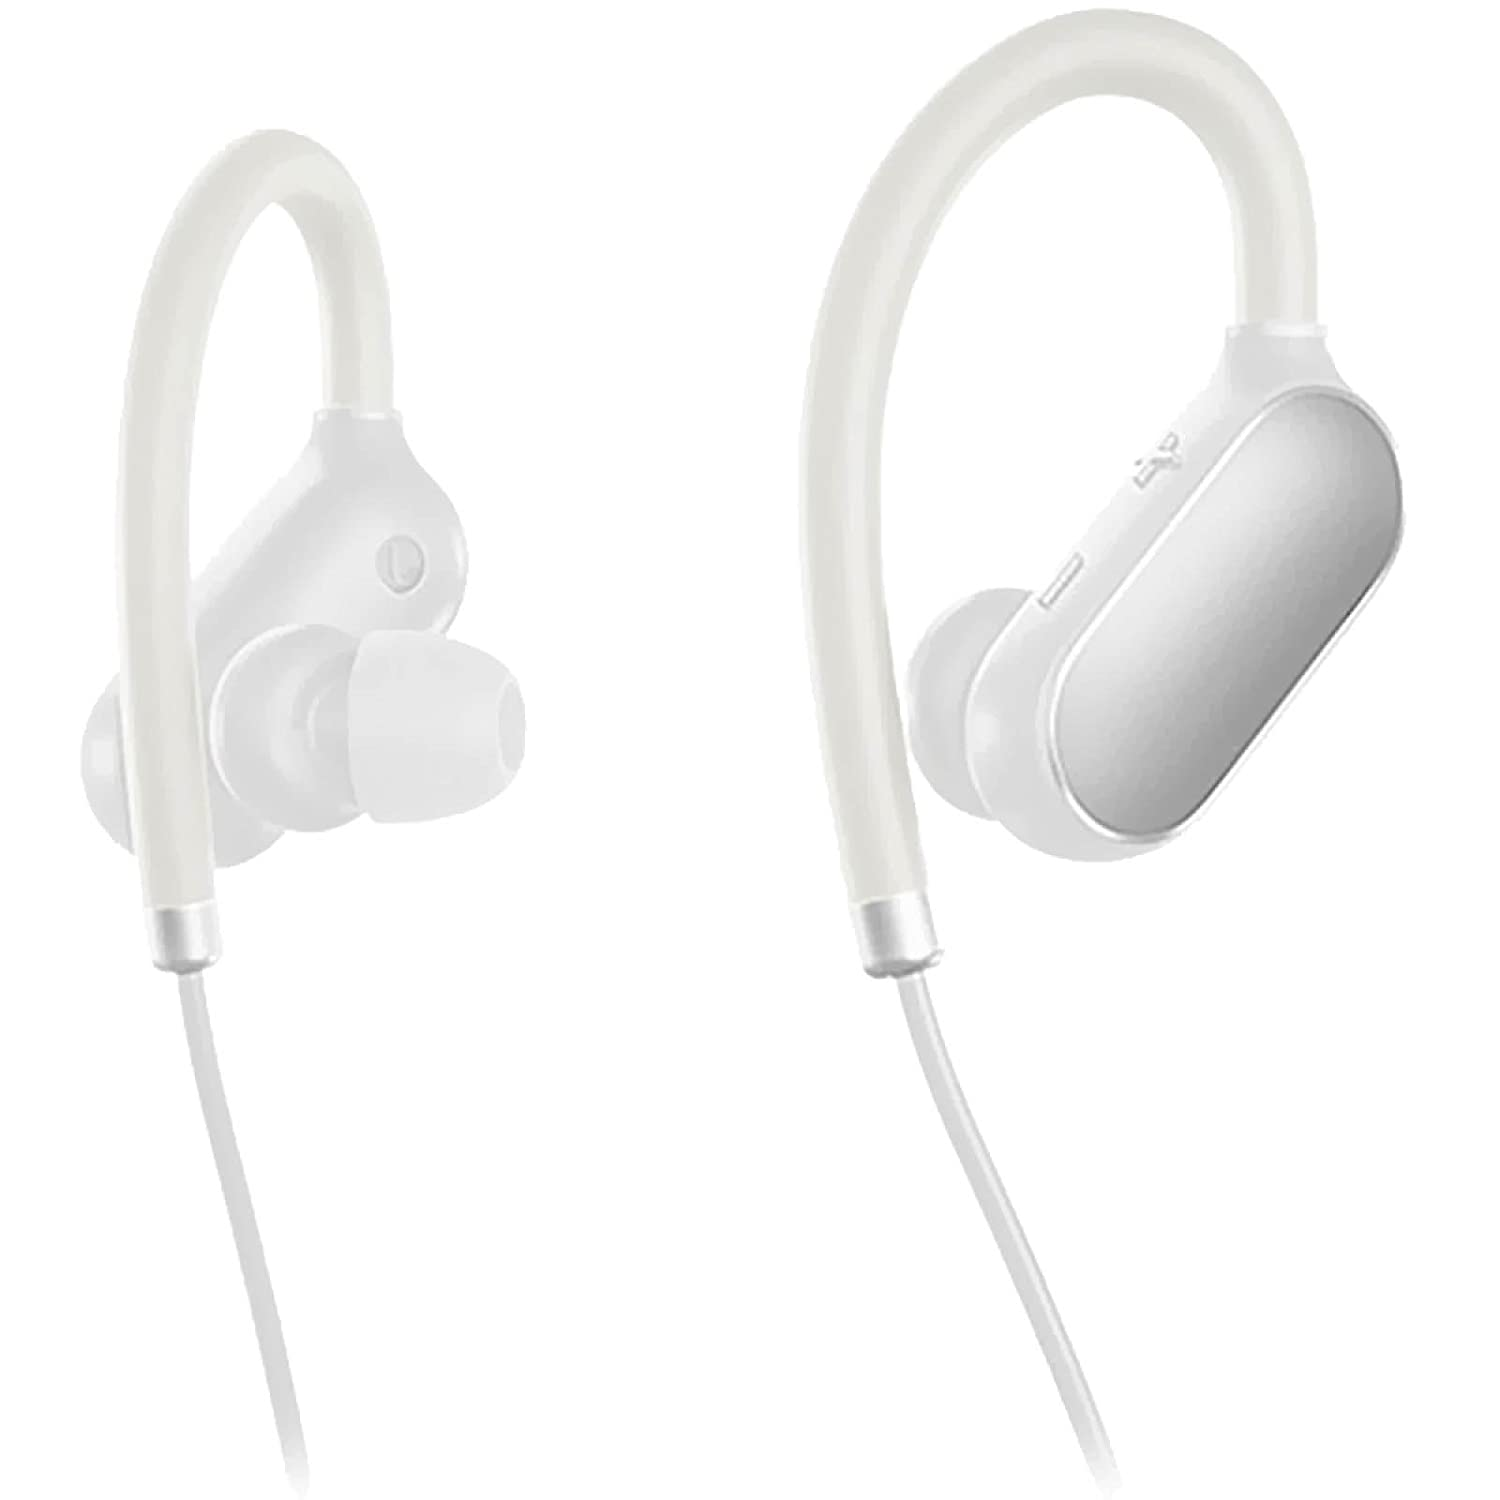 Cascos Inalambricos Xiaomi https://amzn.to/2MizQIF